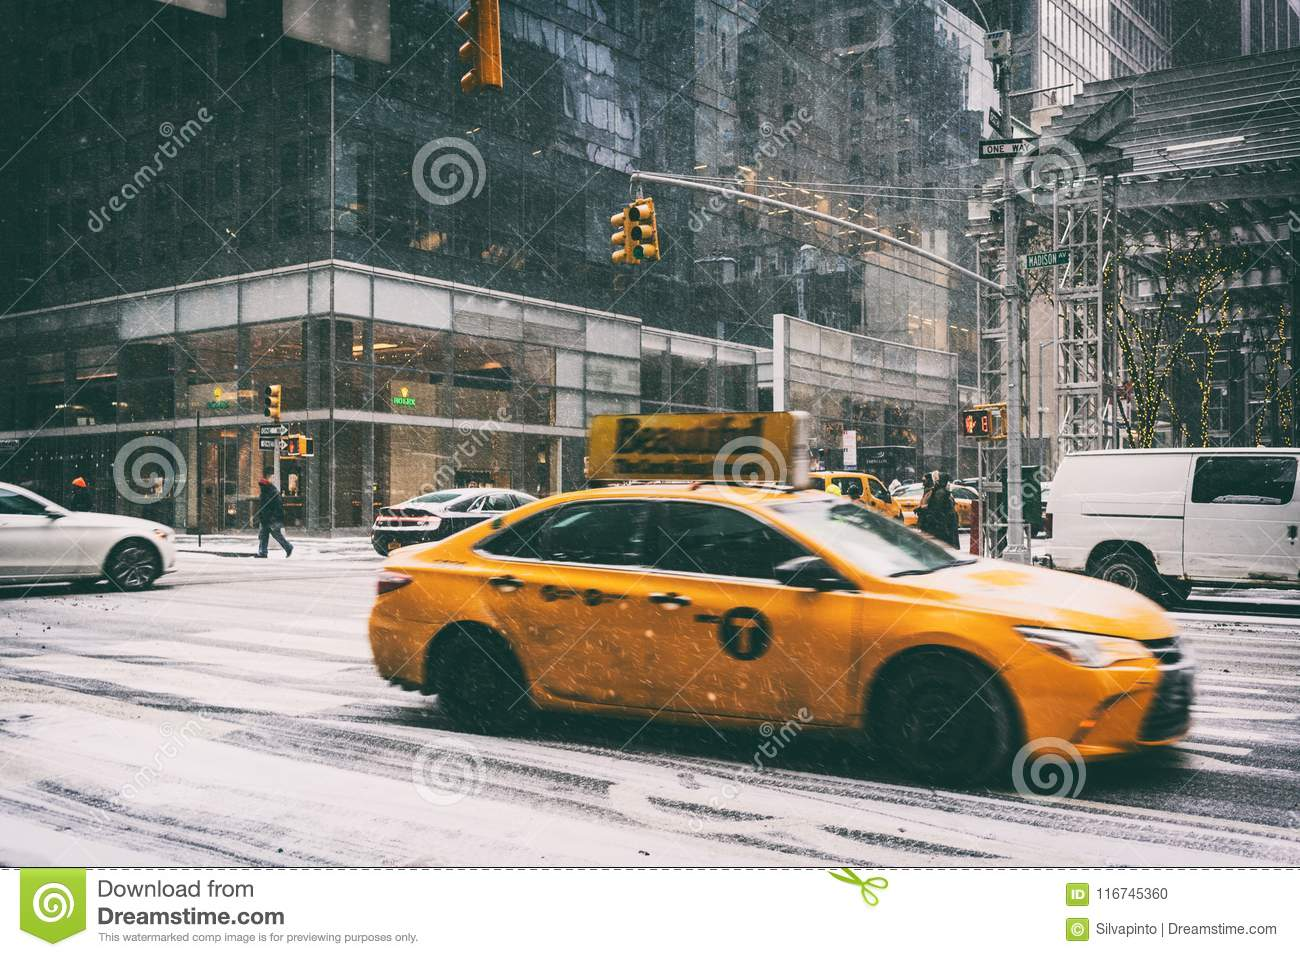 31 DEZ 2017 - NEW YORK/USA - Taxi on the streets of New York with snow.